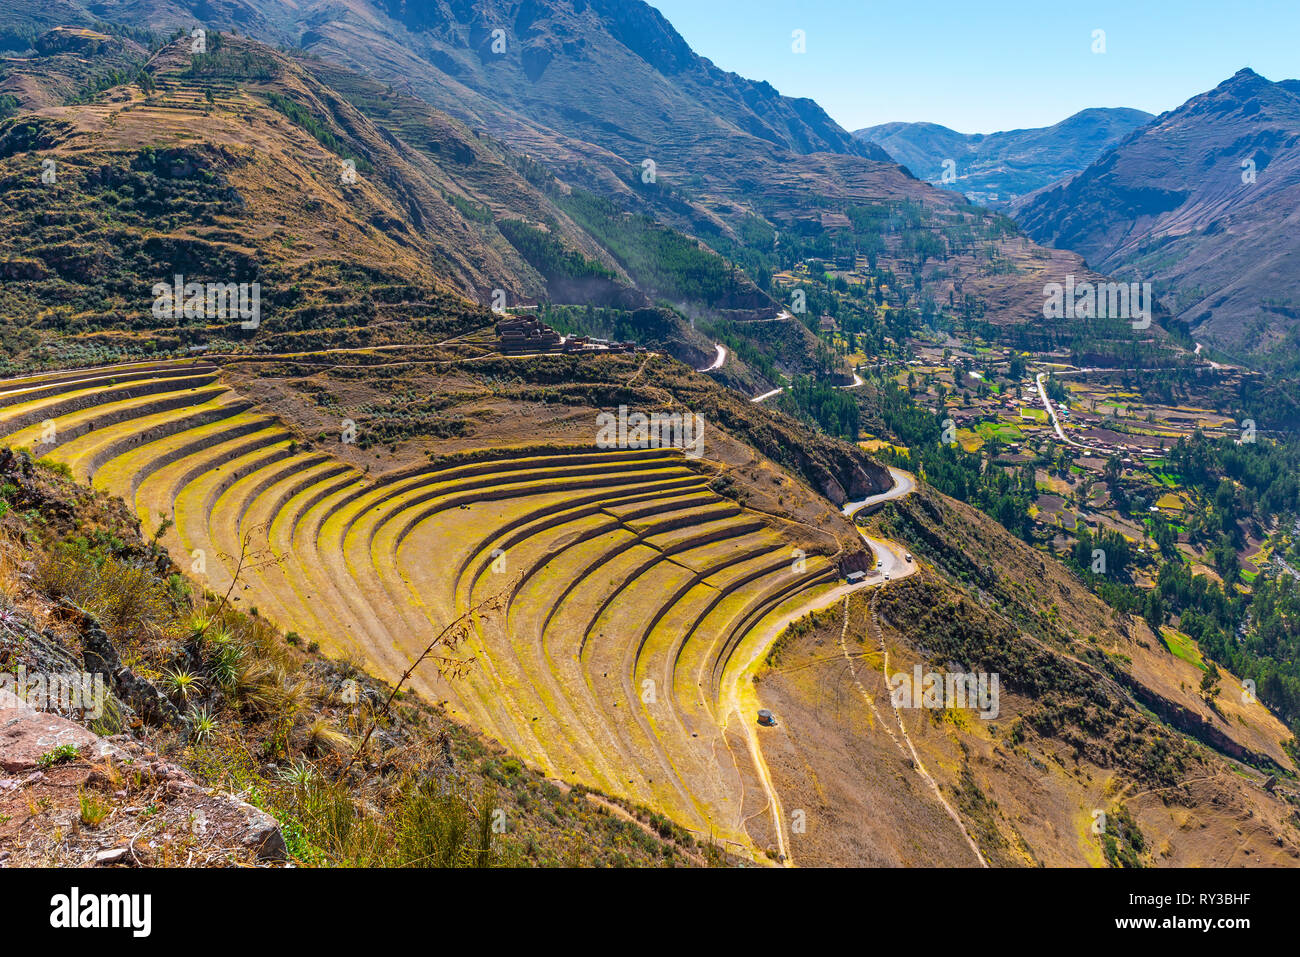 The gigantic archaeological site of Pisac with famed for its agriculture terraced field in the Sacred Valley of the Inca near Cusco, Peru. - Stock Image